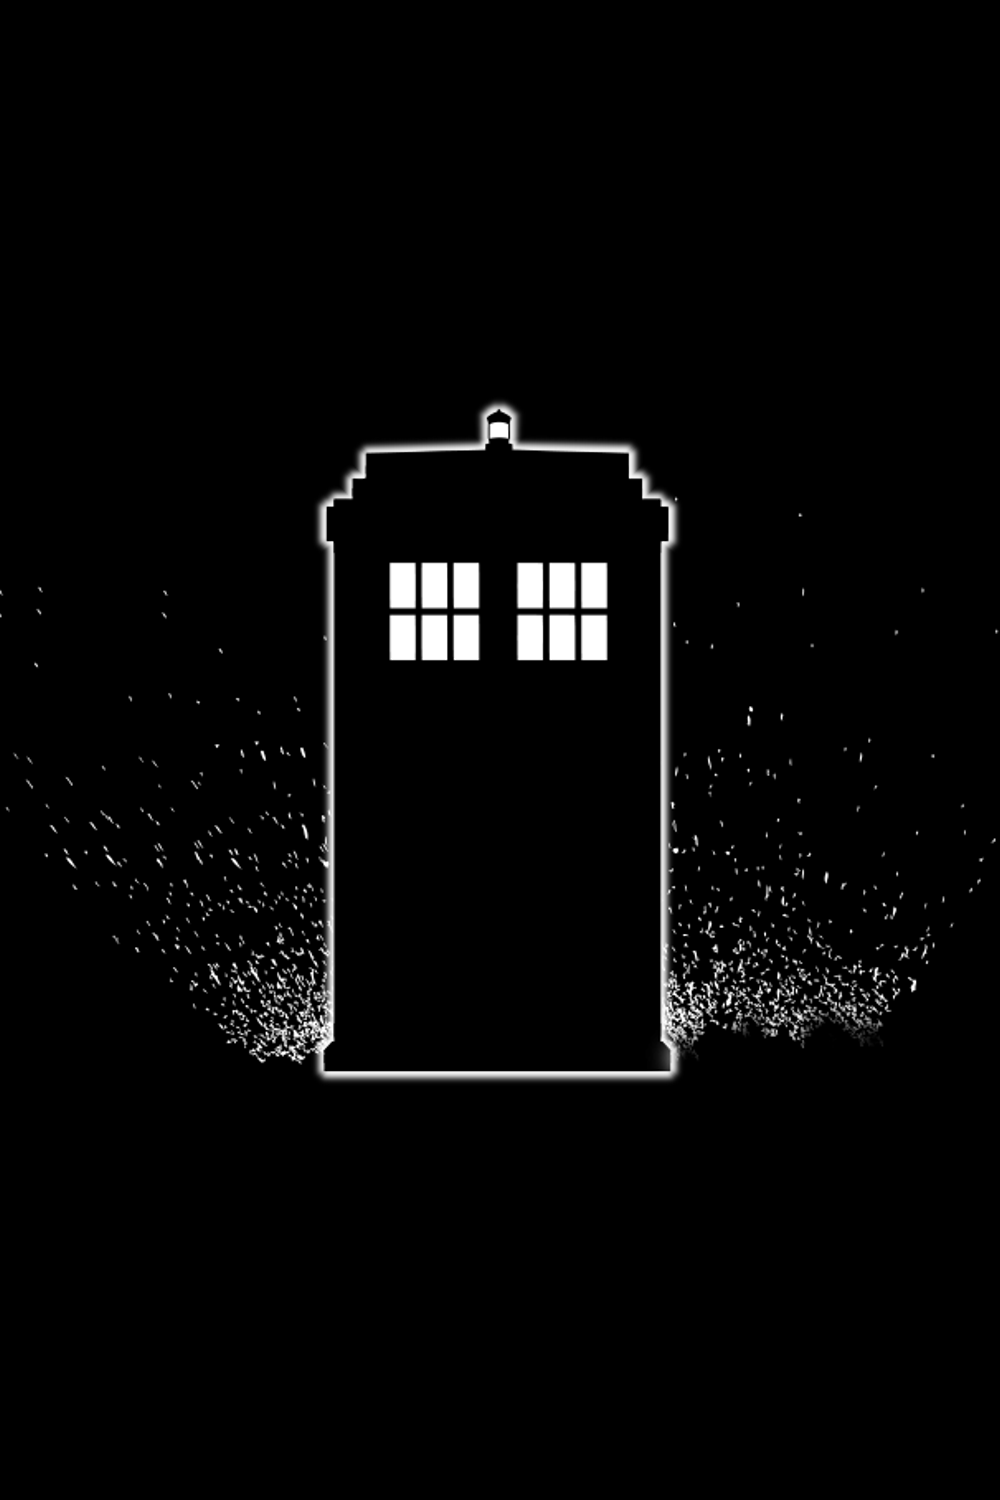 image - exclusive doctor who iphone wallpaper | community